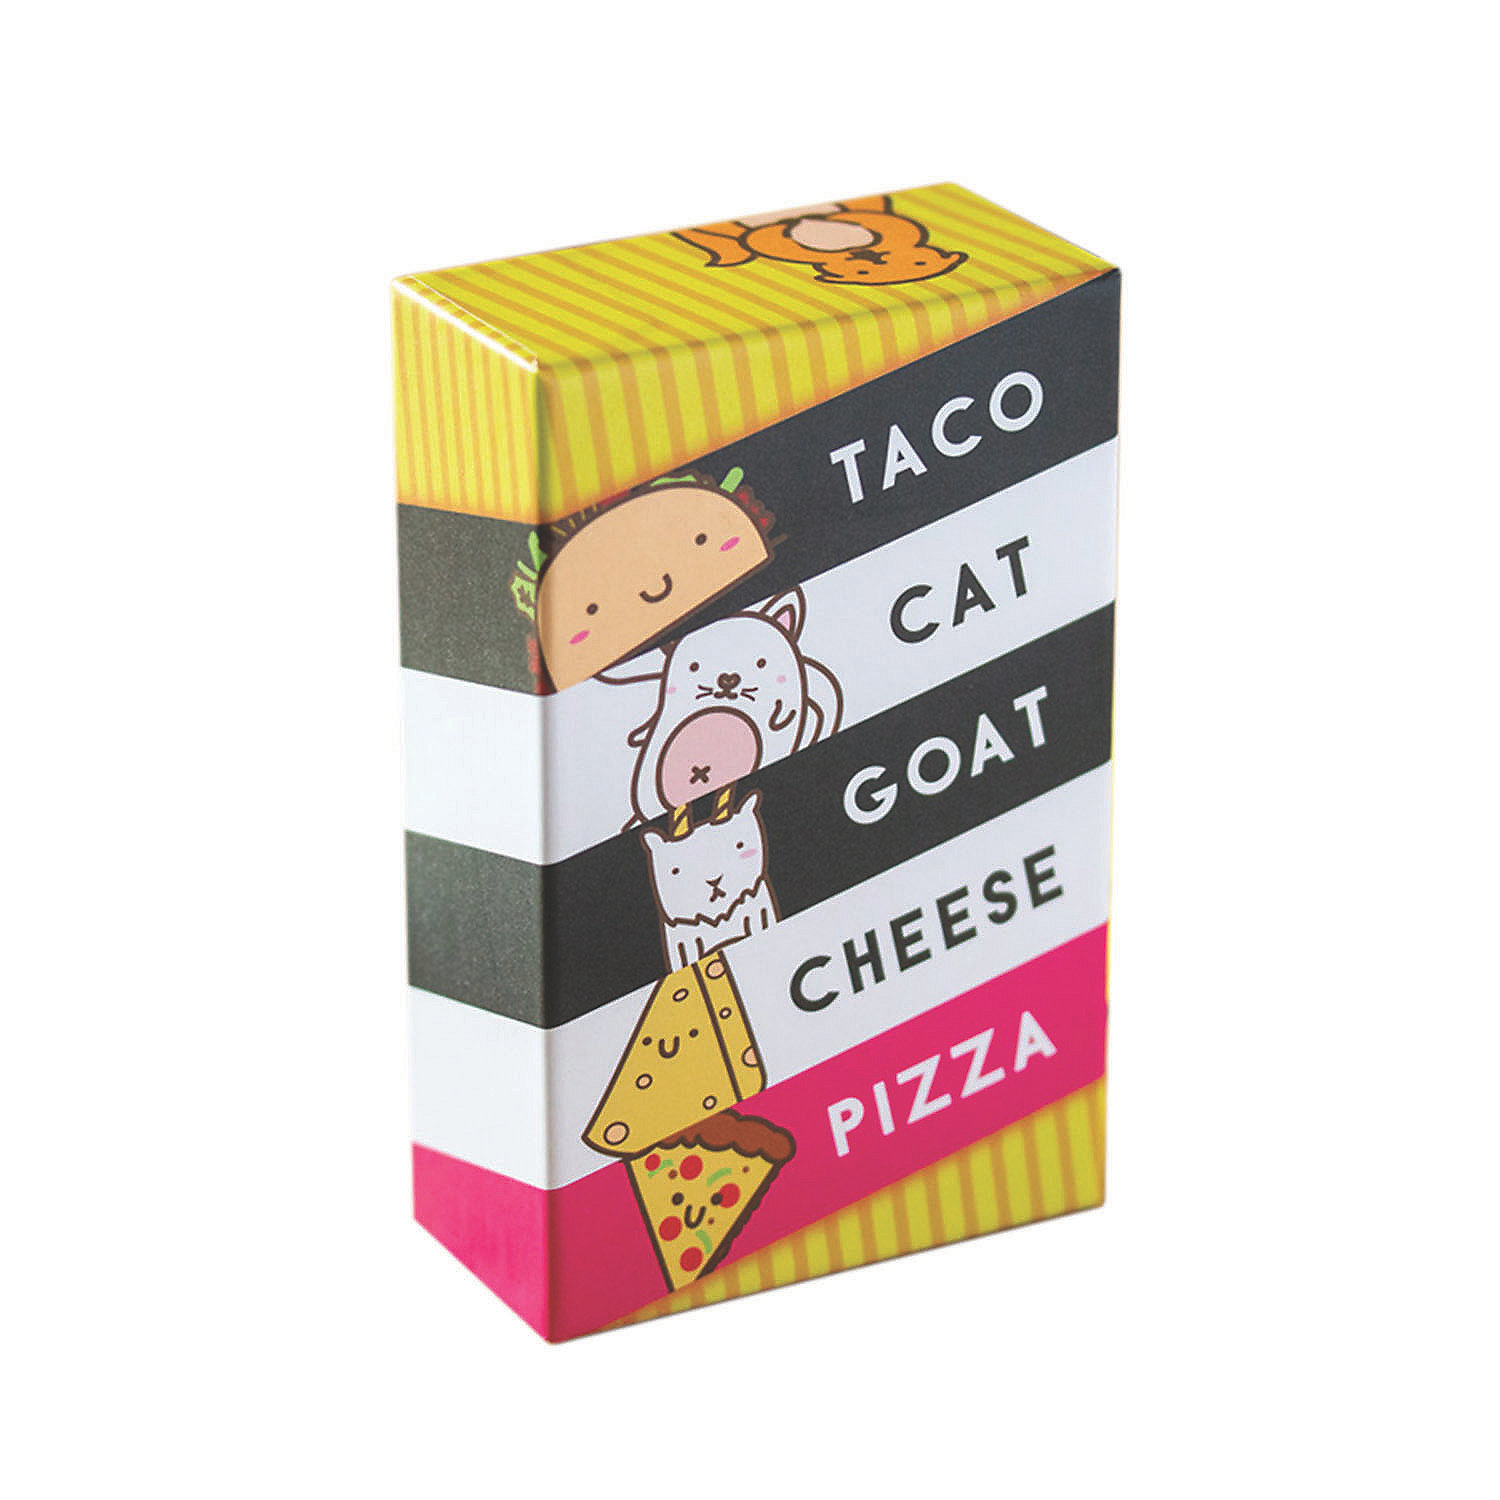 Taco Cat Goat Cheese Pizza Card Game-1